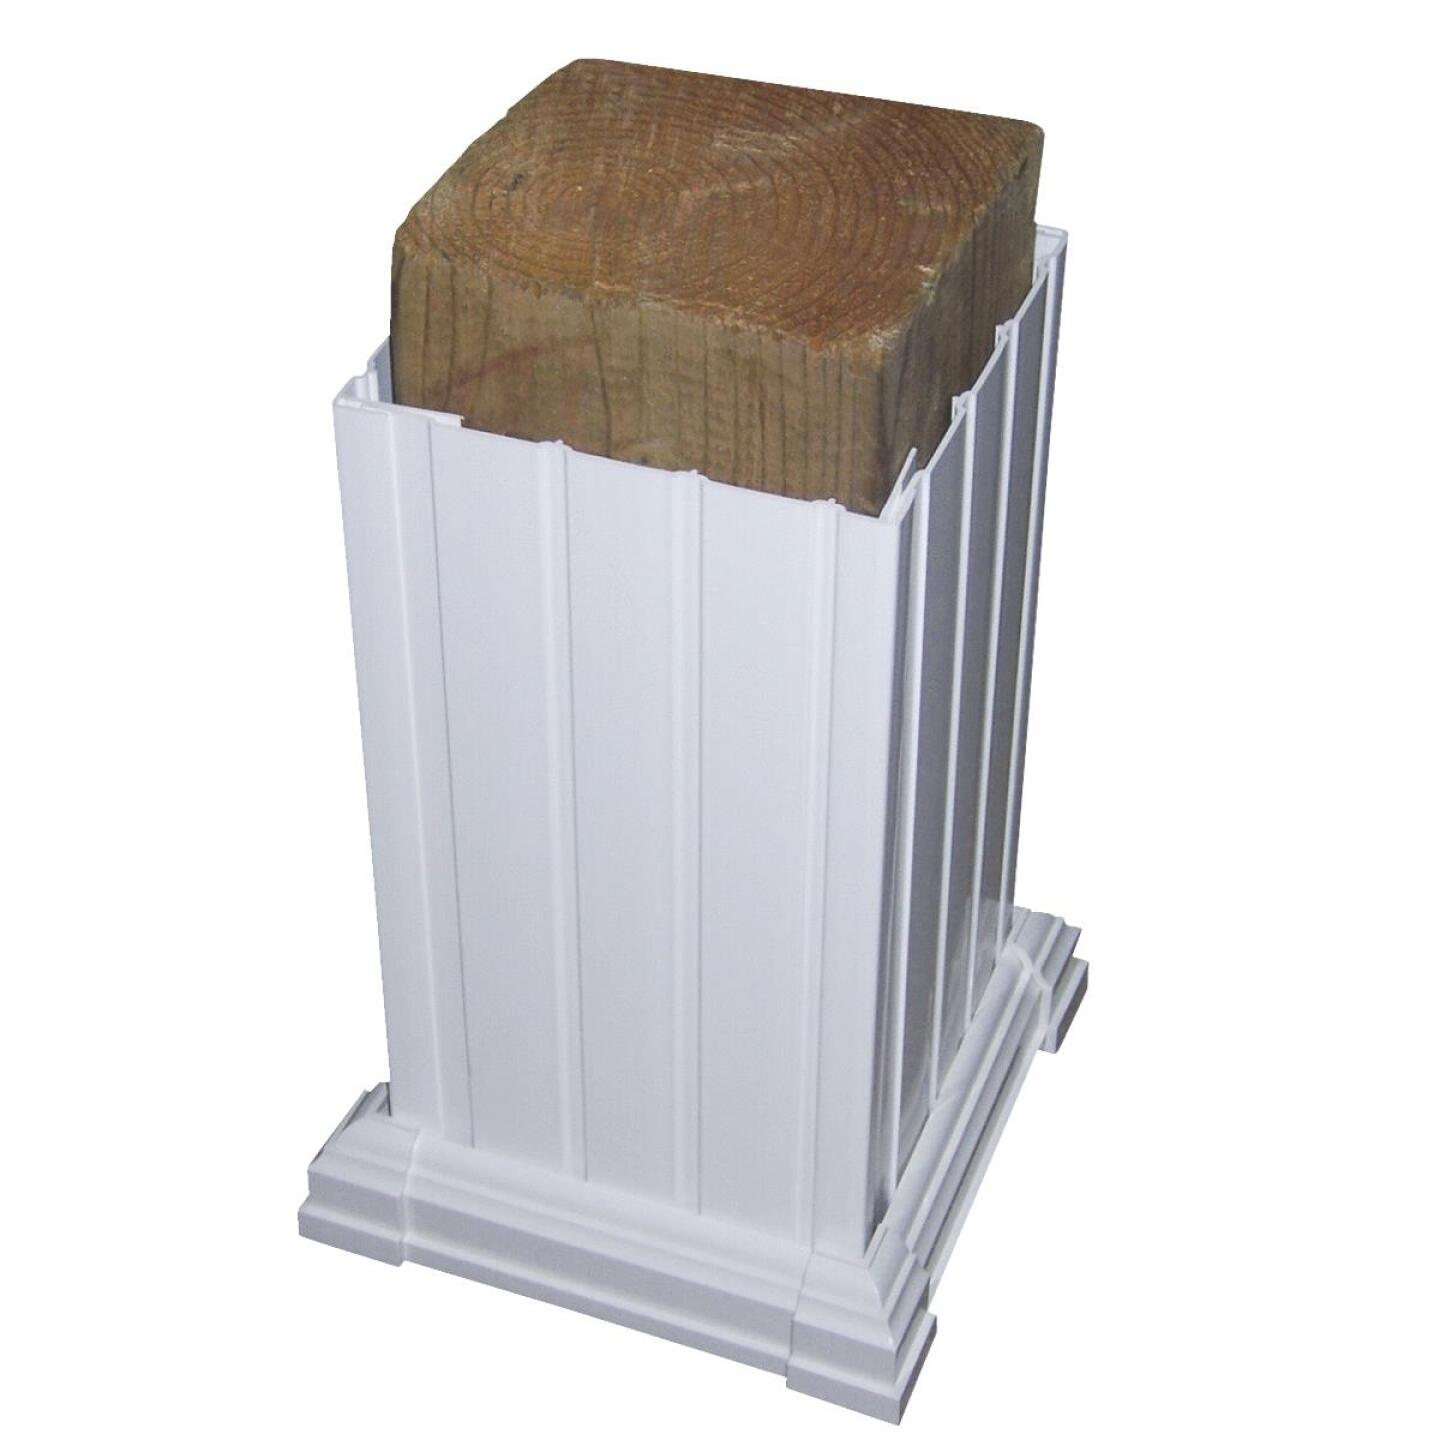 Beechdale 6 In. W. x 6 In. H. x 102 In. L. White PVC Fluted Post Wrap Image 3